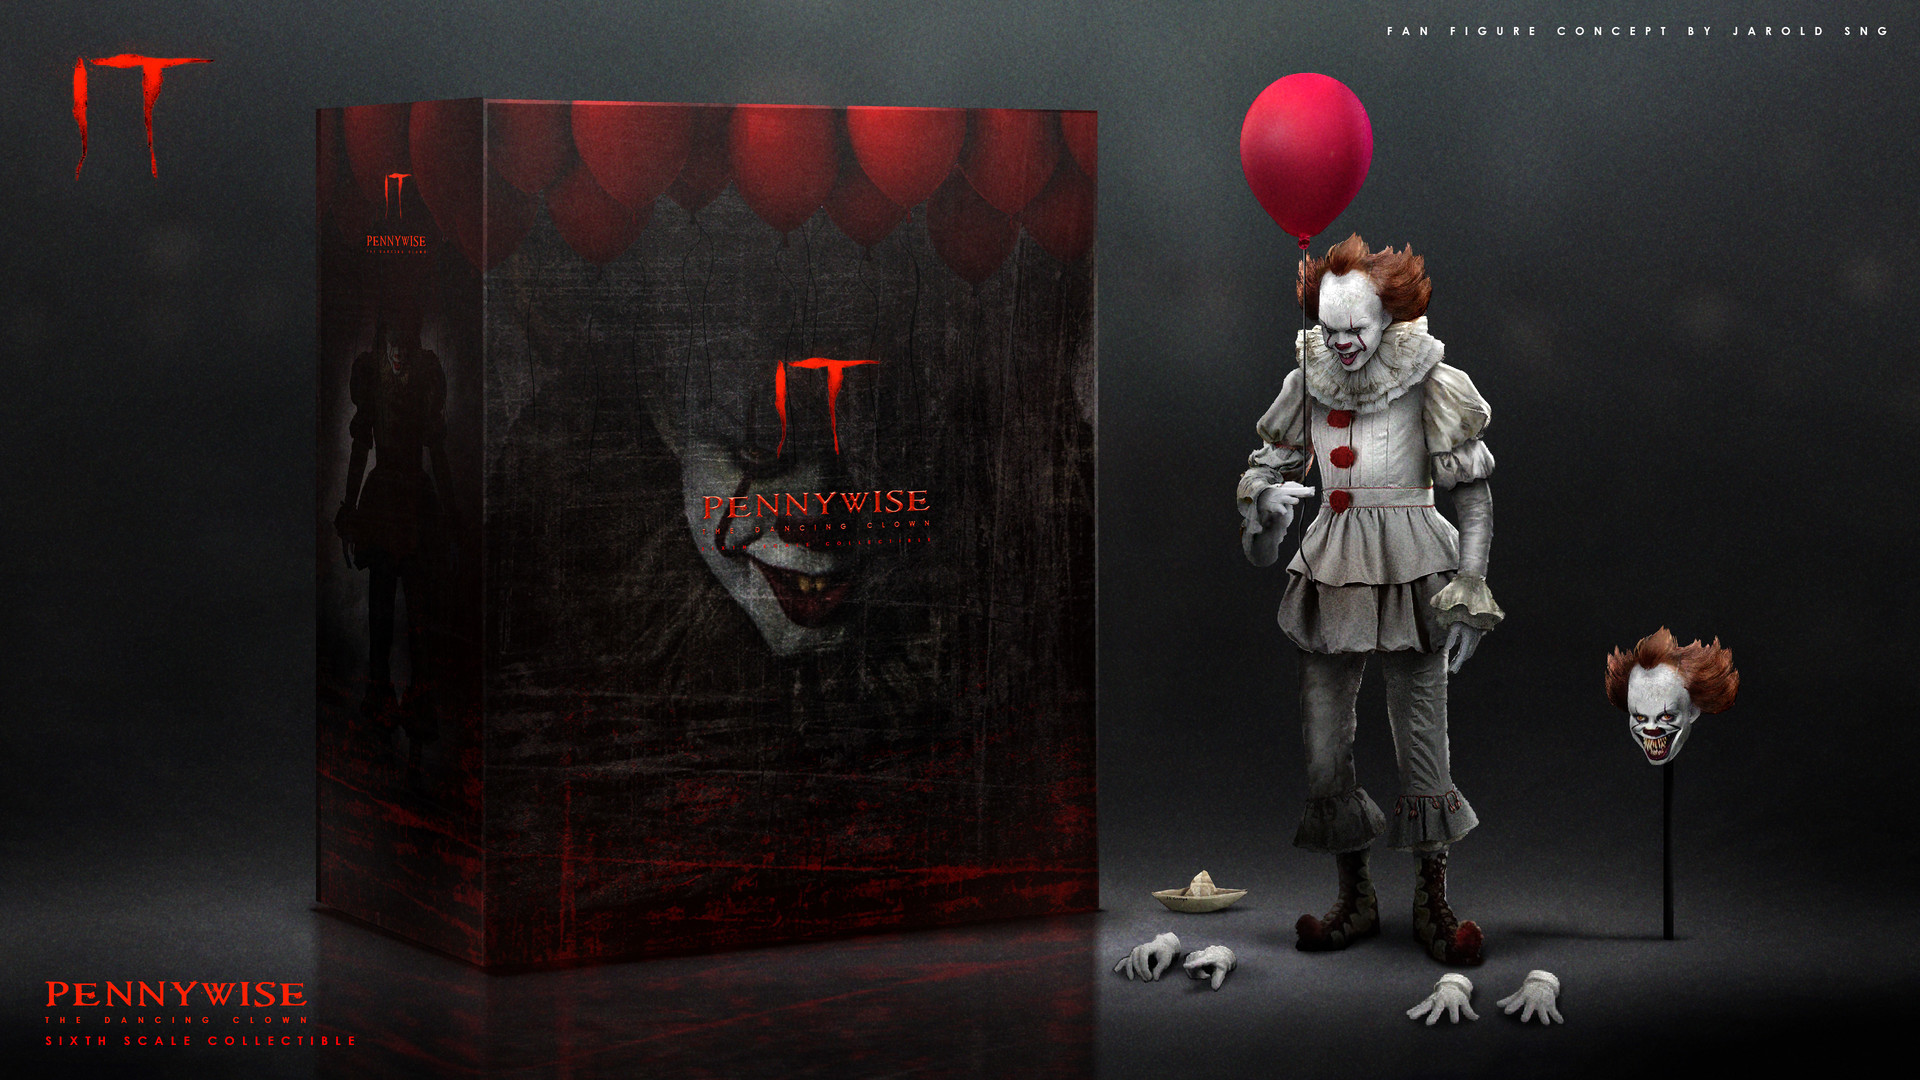 Hd Halloween Wallpaper 1920x1080 Pennywise Wallpaper 67 Images